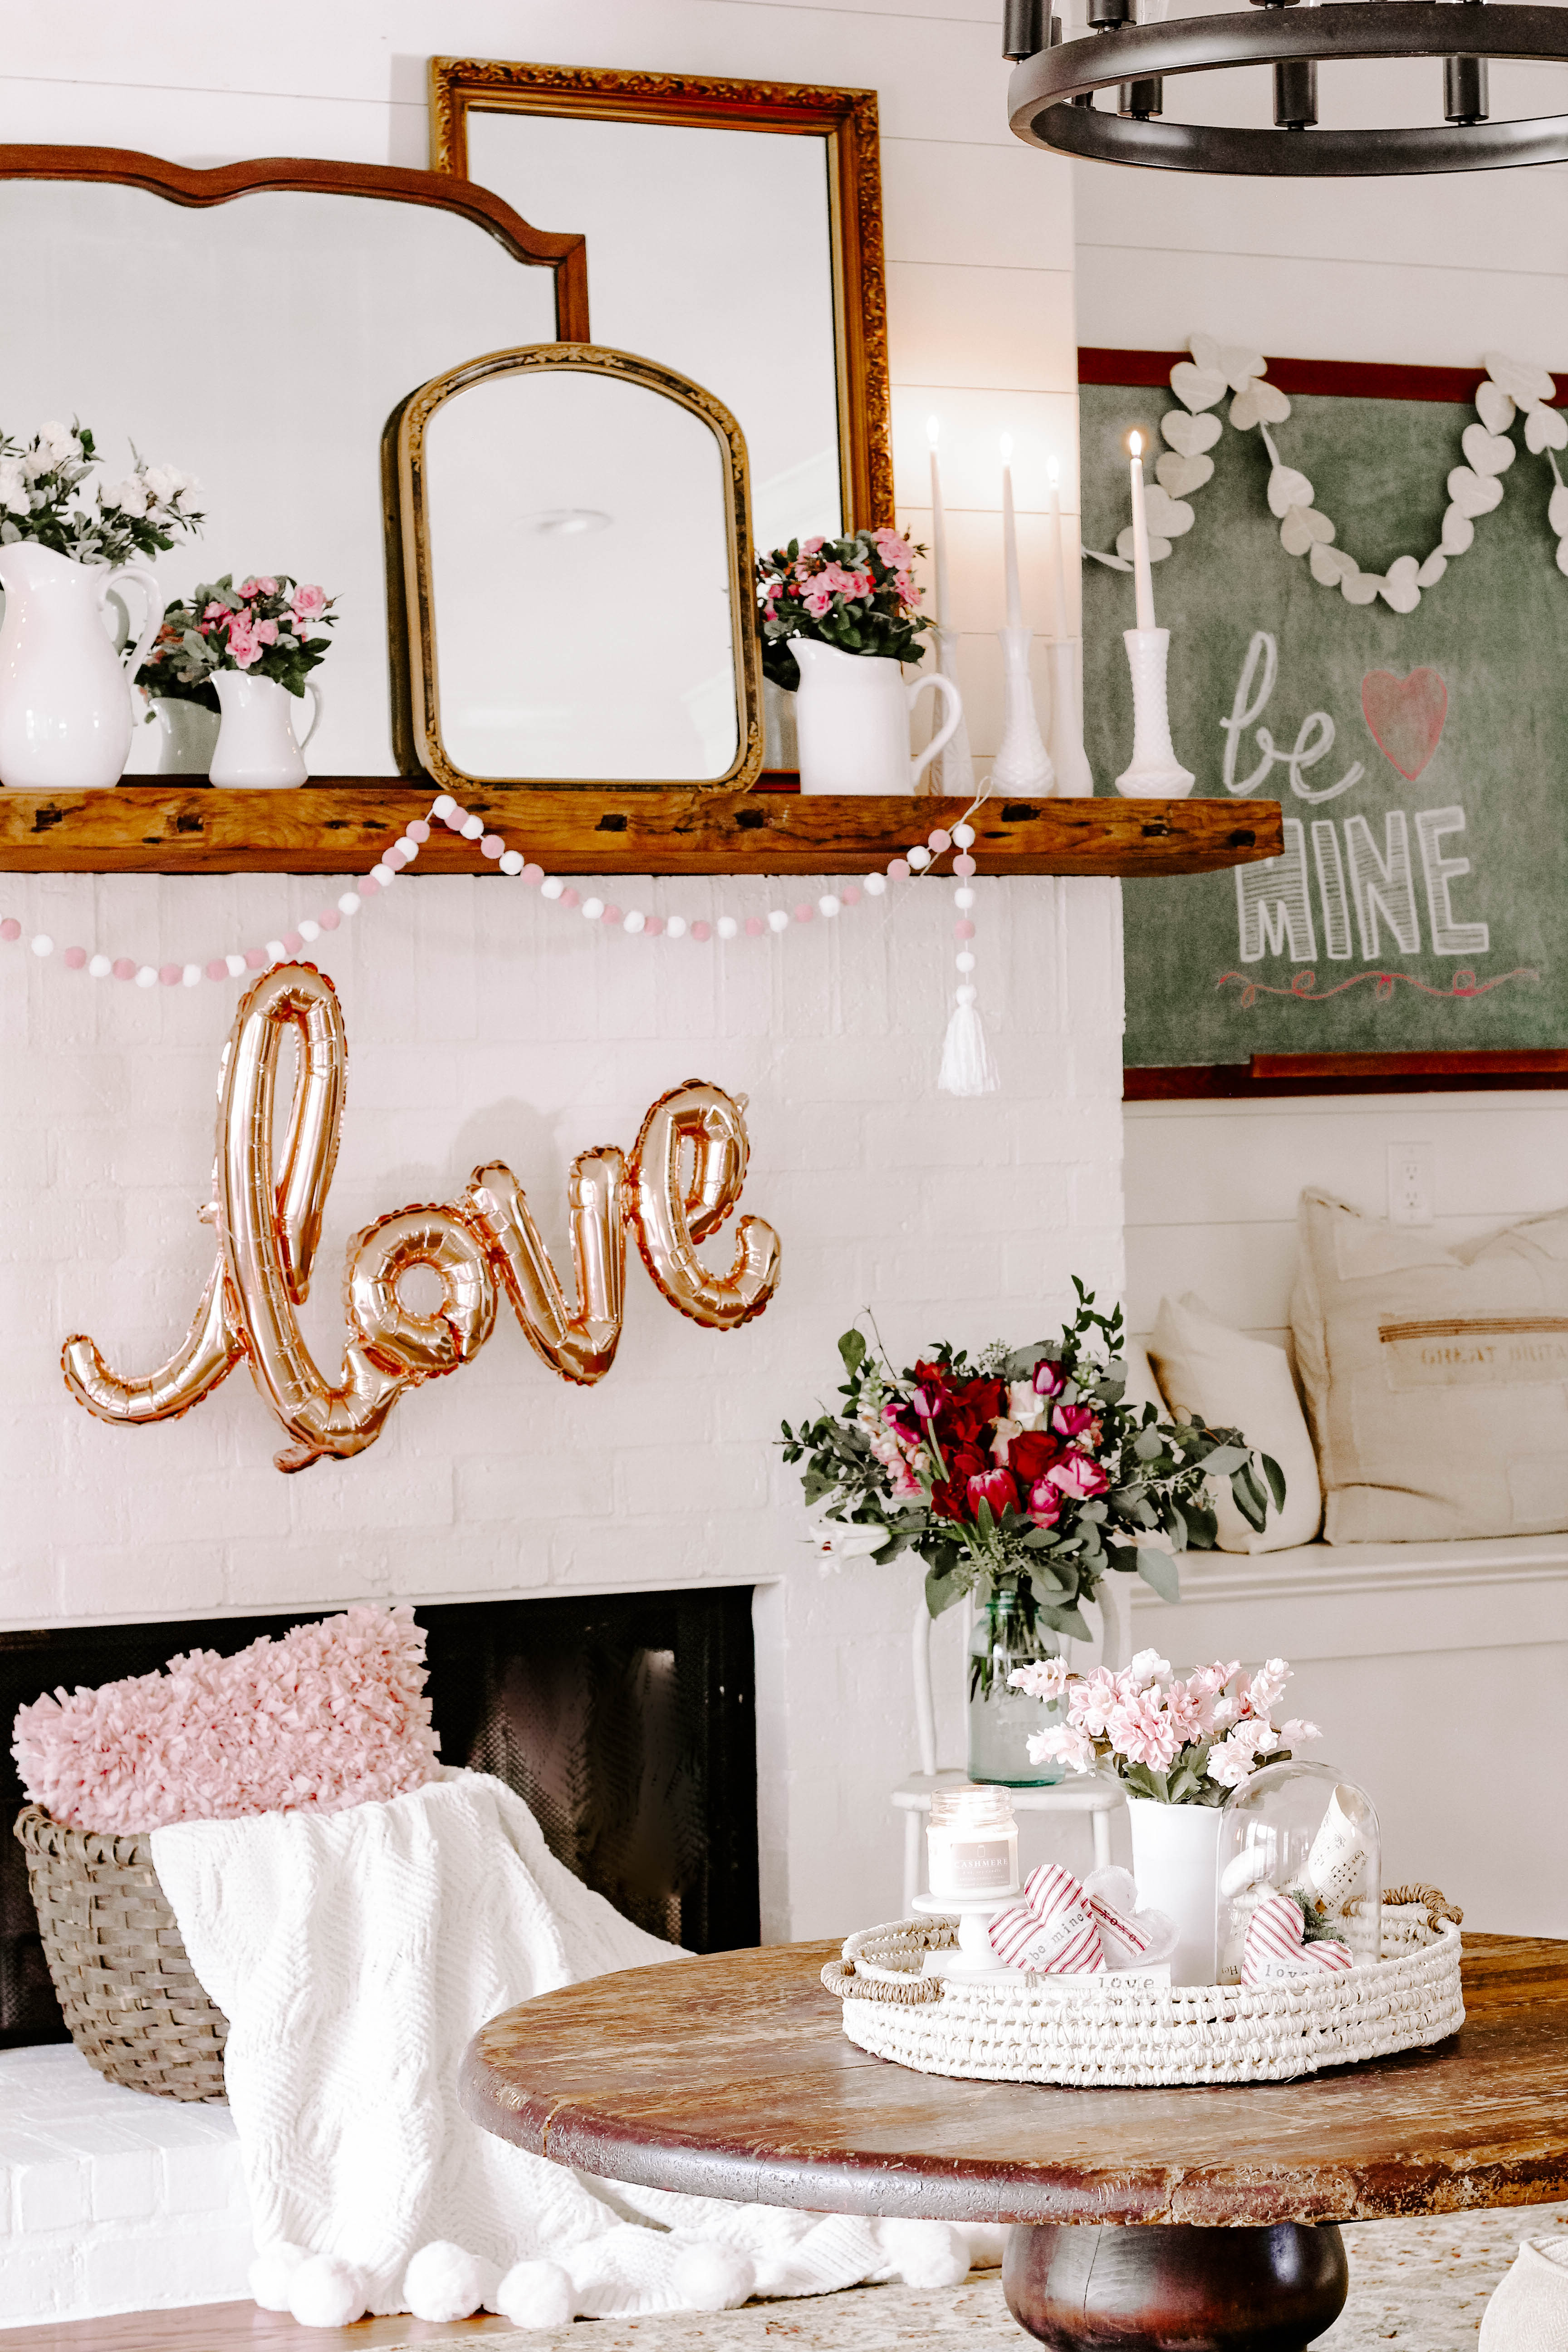 Looking for Valentine inspiration? Be inspired by lots of farmhouse and vintage valentine decor ideas to help you get started. #valentinemantel #valentinedecor #vintagevalentine #valentineideas